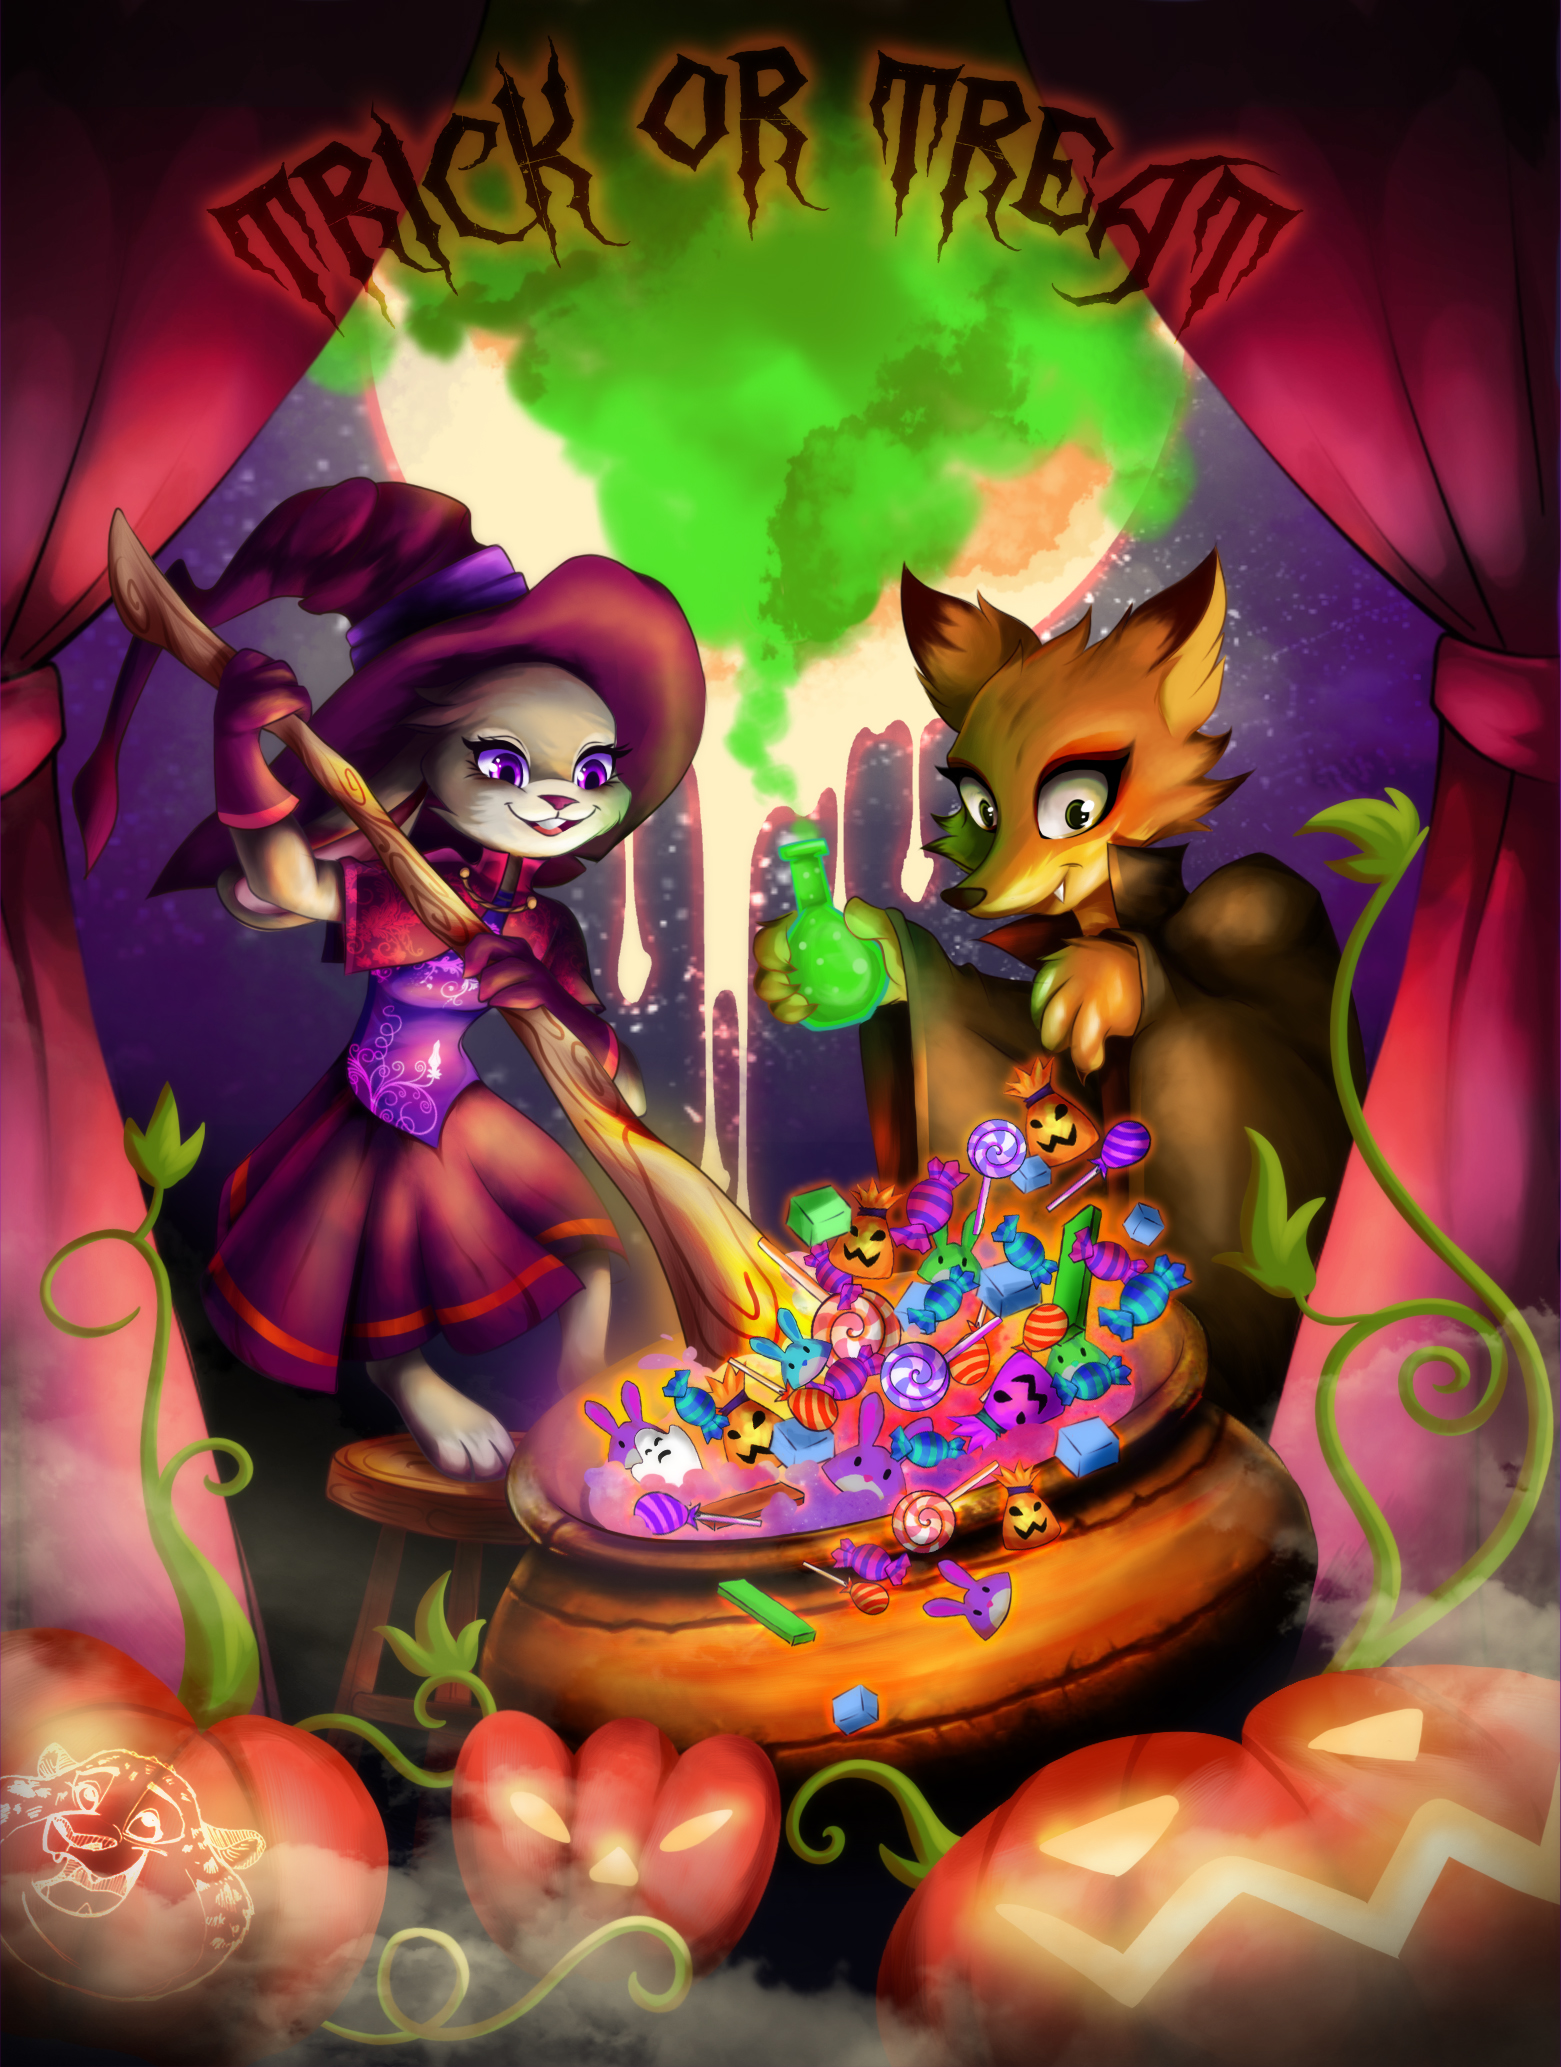 Art of the Day #64: Happy Halloween! – Zootopia News Network